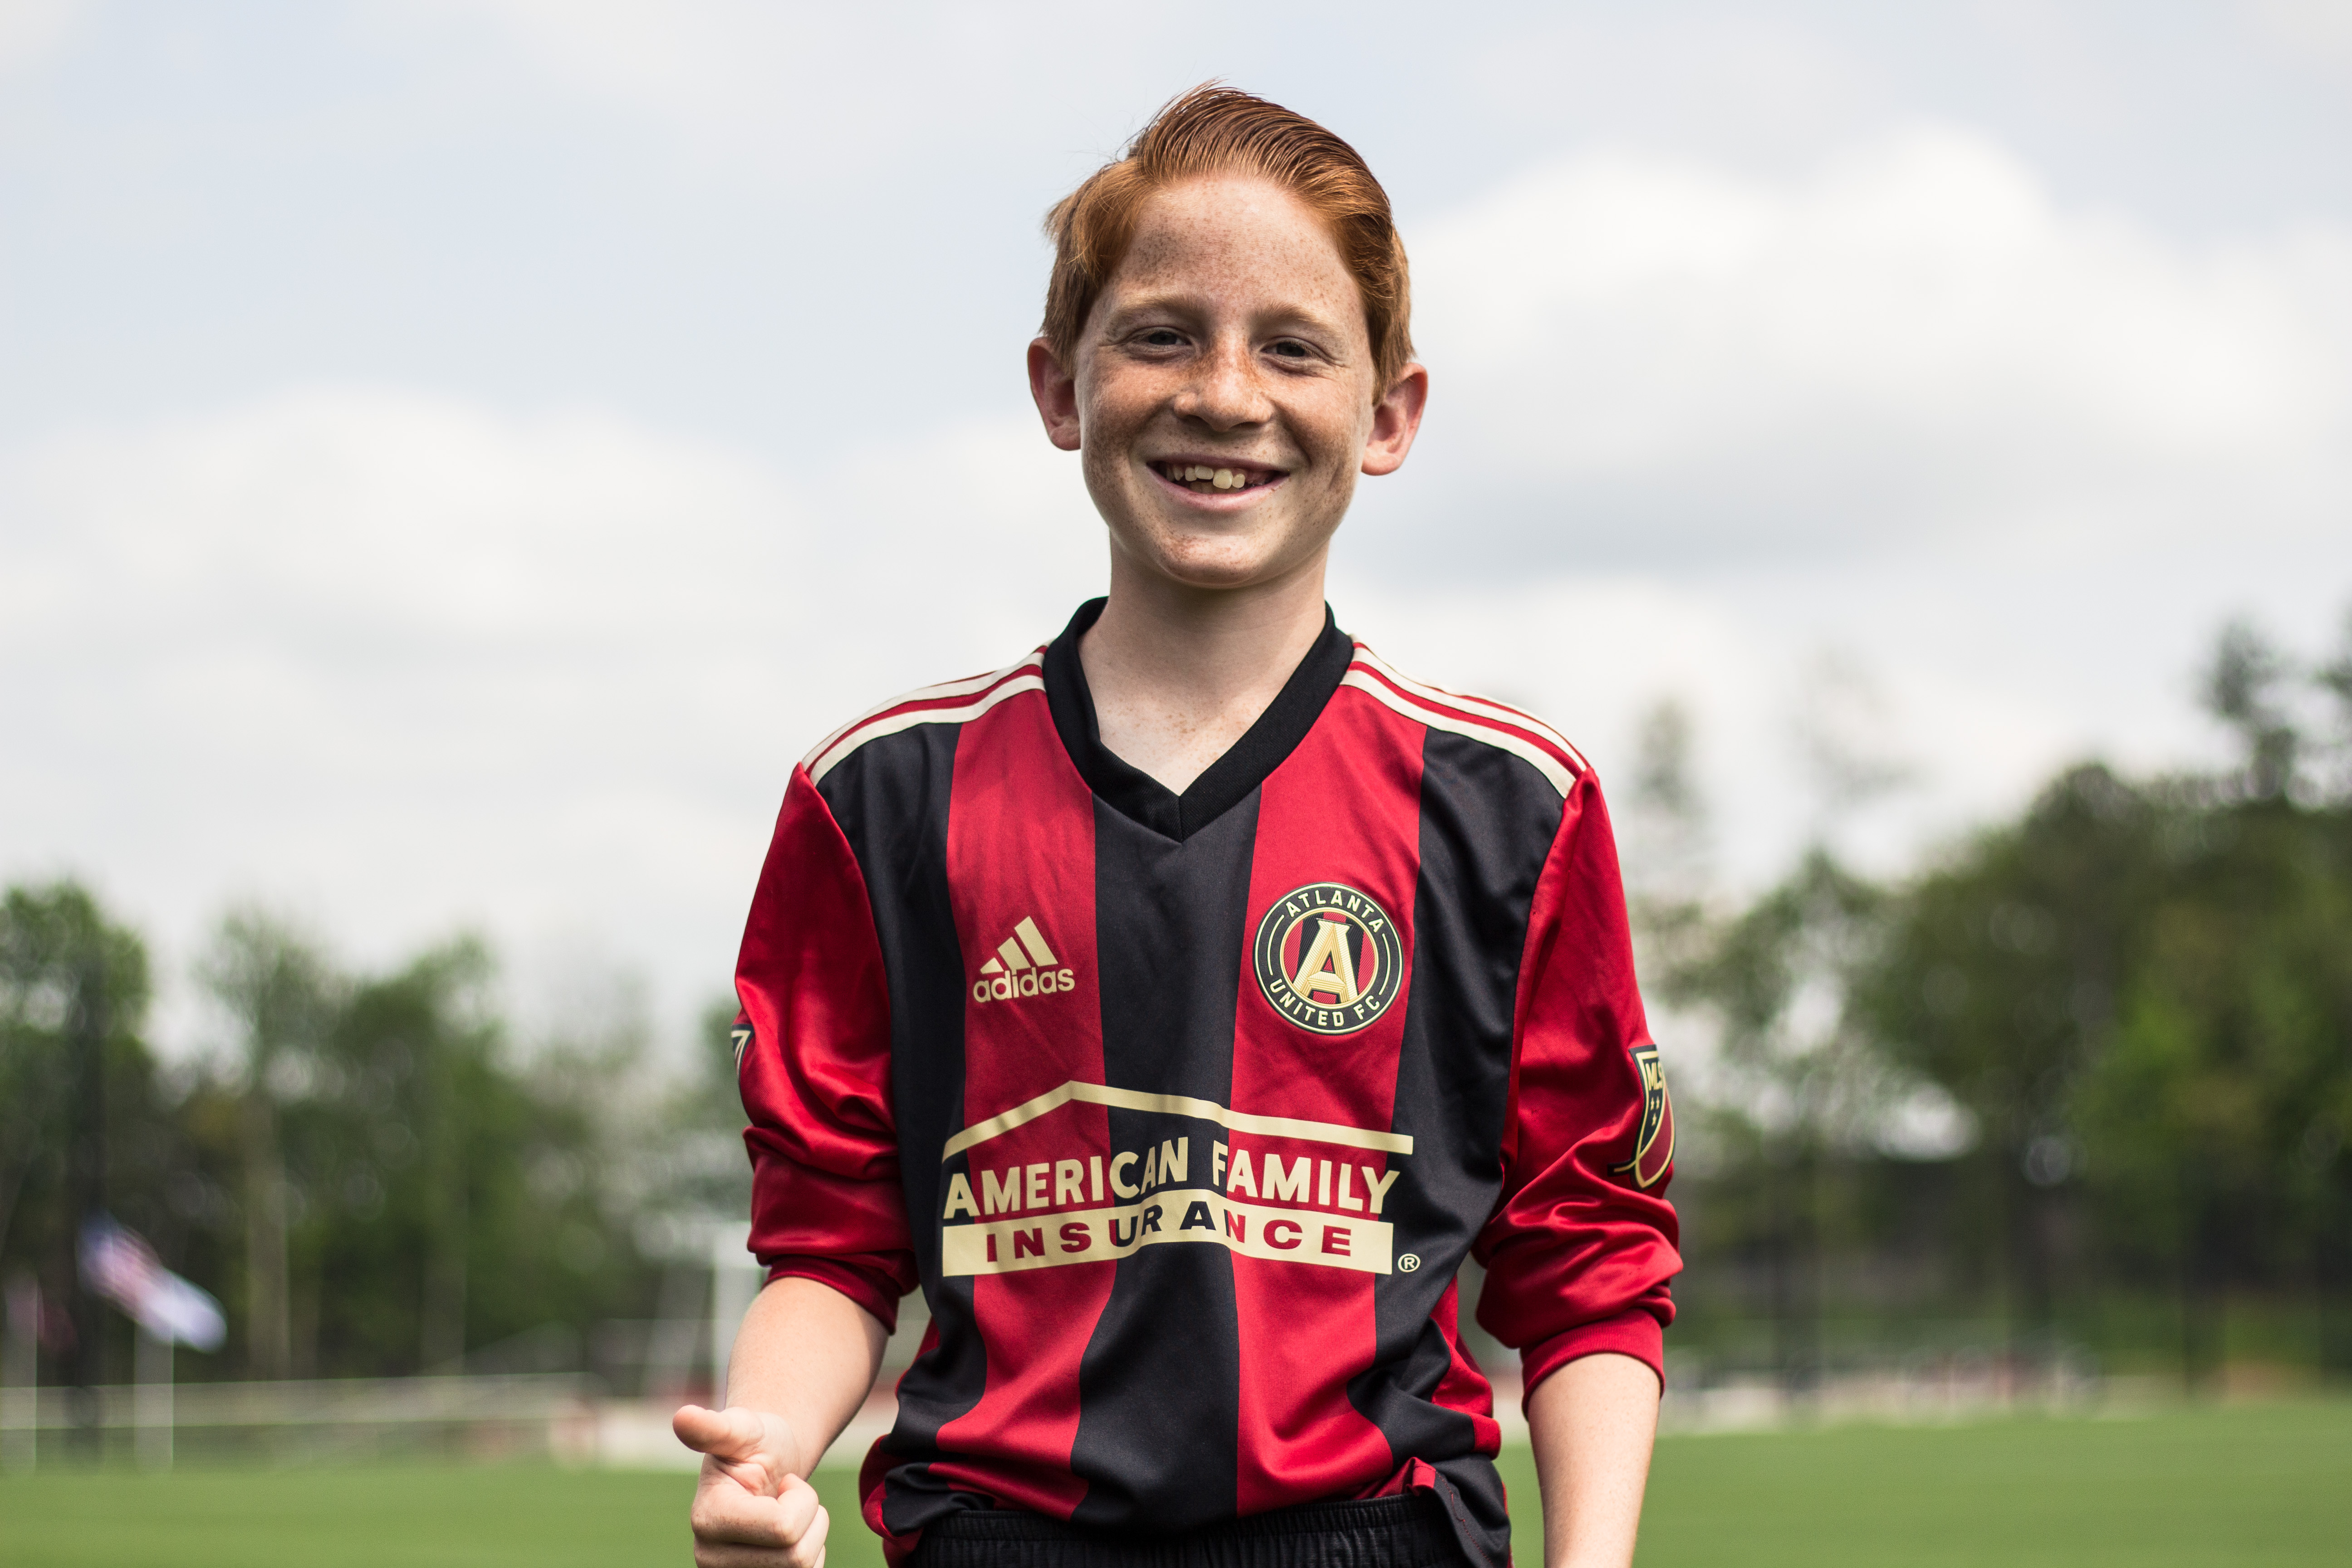 ae03c92d81 Behind the Stripes: Alan Carleton | Atlanta United FC